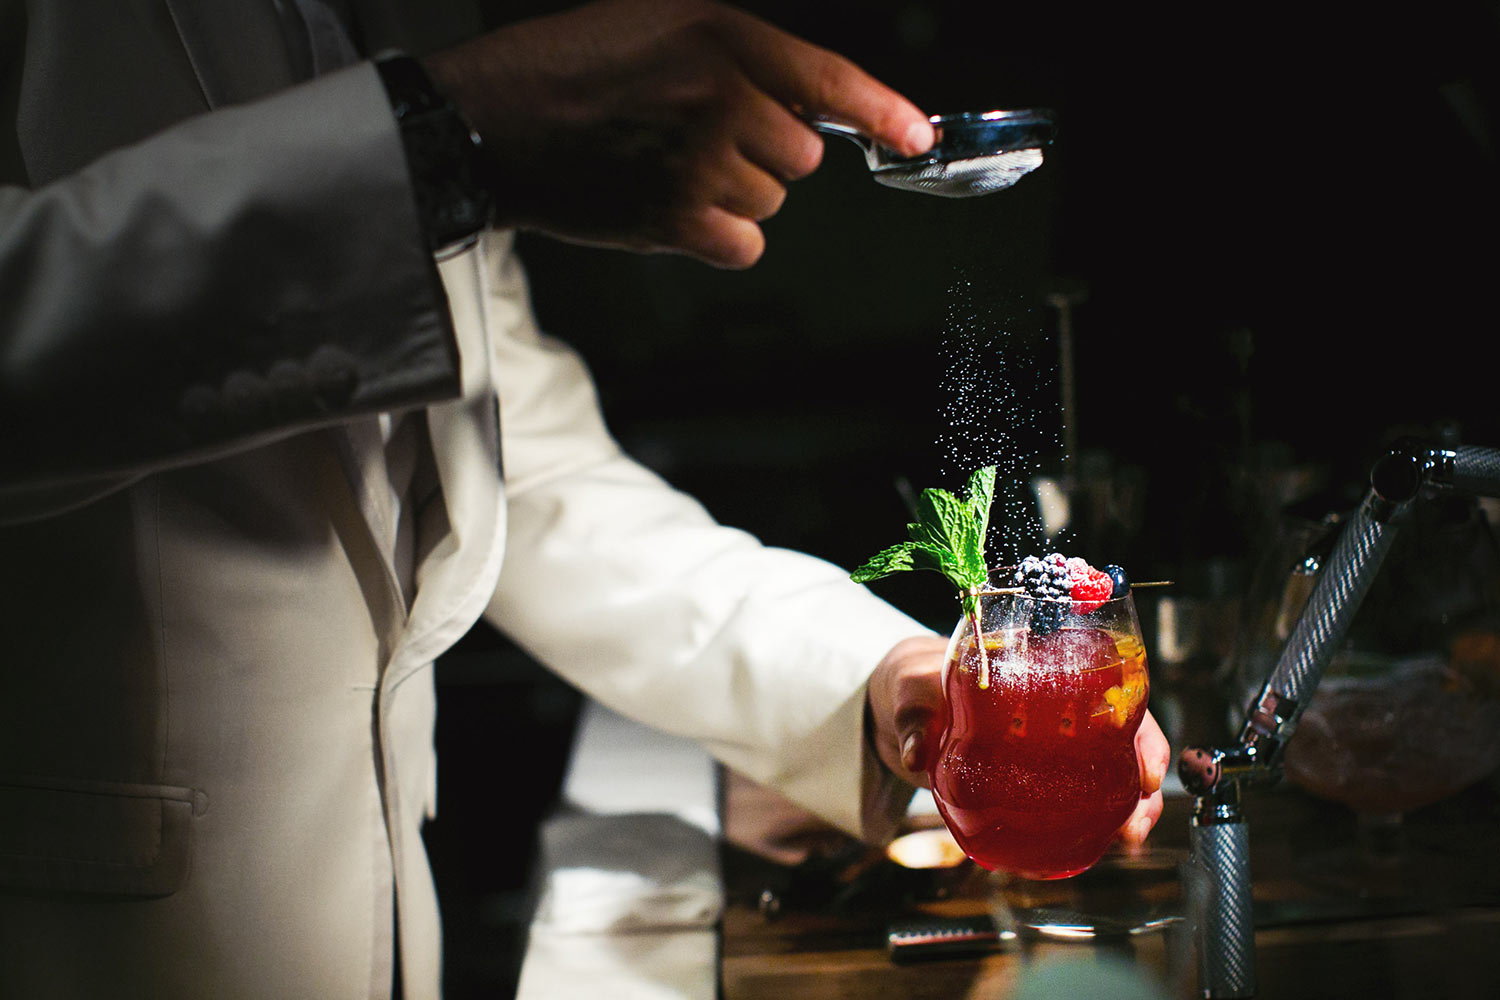 Bartender making a sangria cocktail, by Callaway Gable